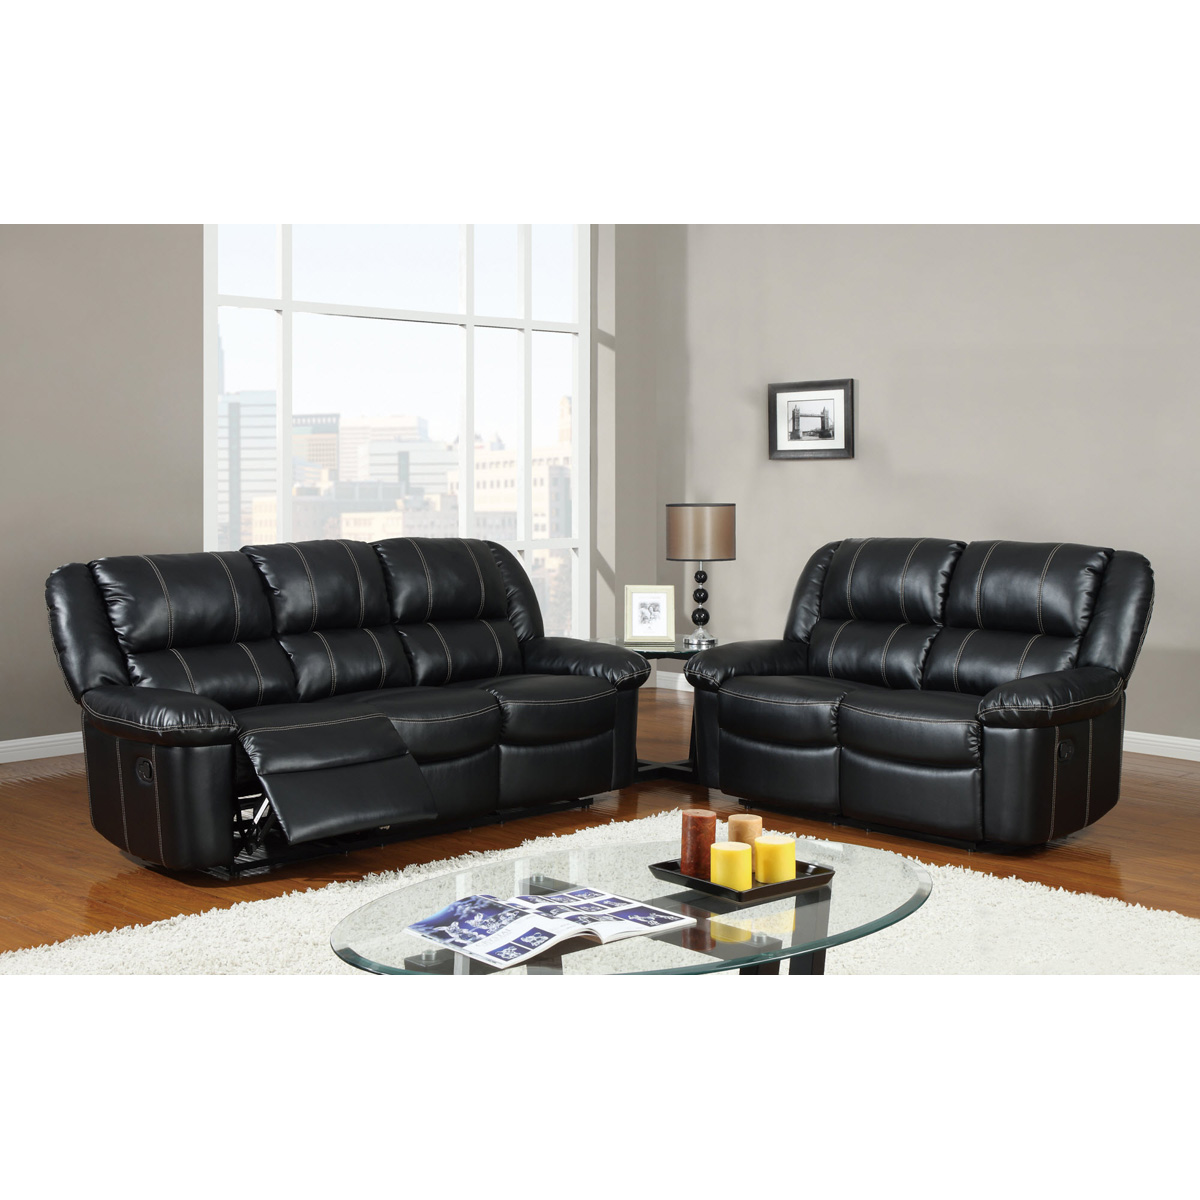 Jocelyn Reclining Sofa Set In Black Leather